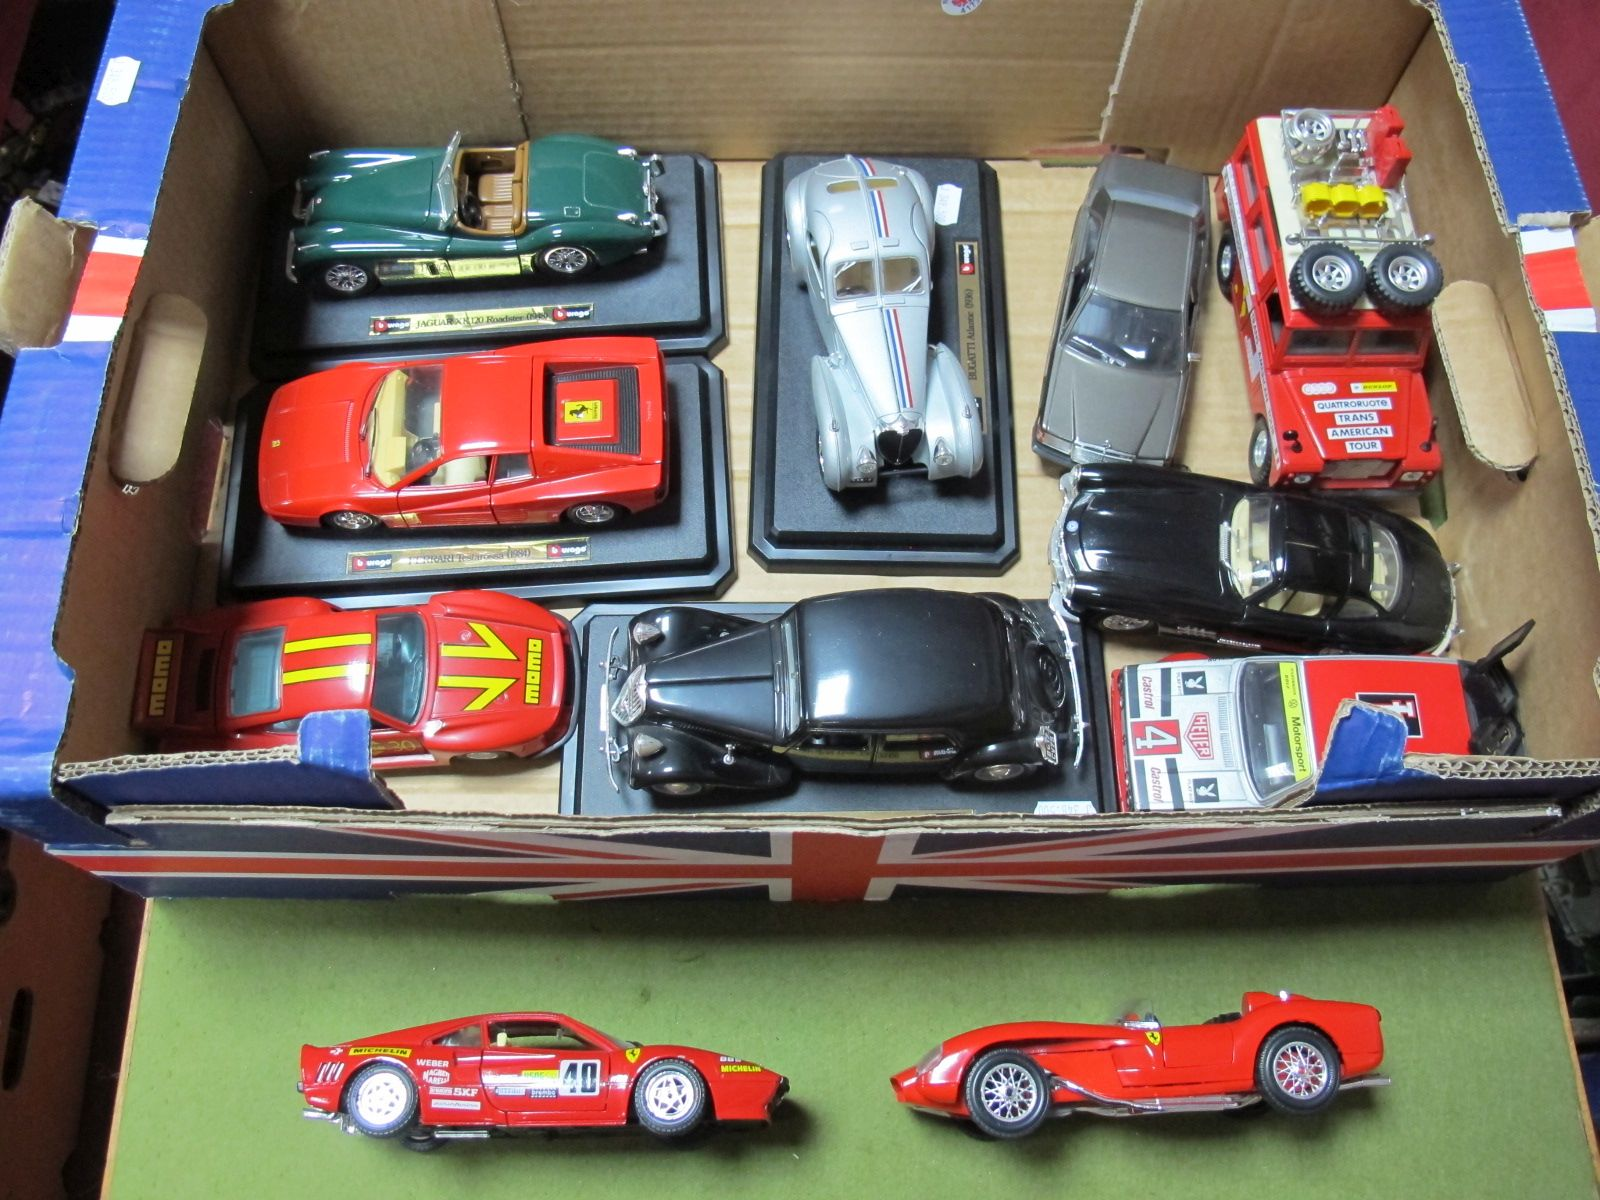 Lot 53 - Eleven Diecast Cars by Burago, predominantly 1:24th scale including Bugatti Atlantic (1936), Ferrari